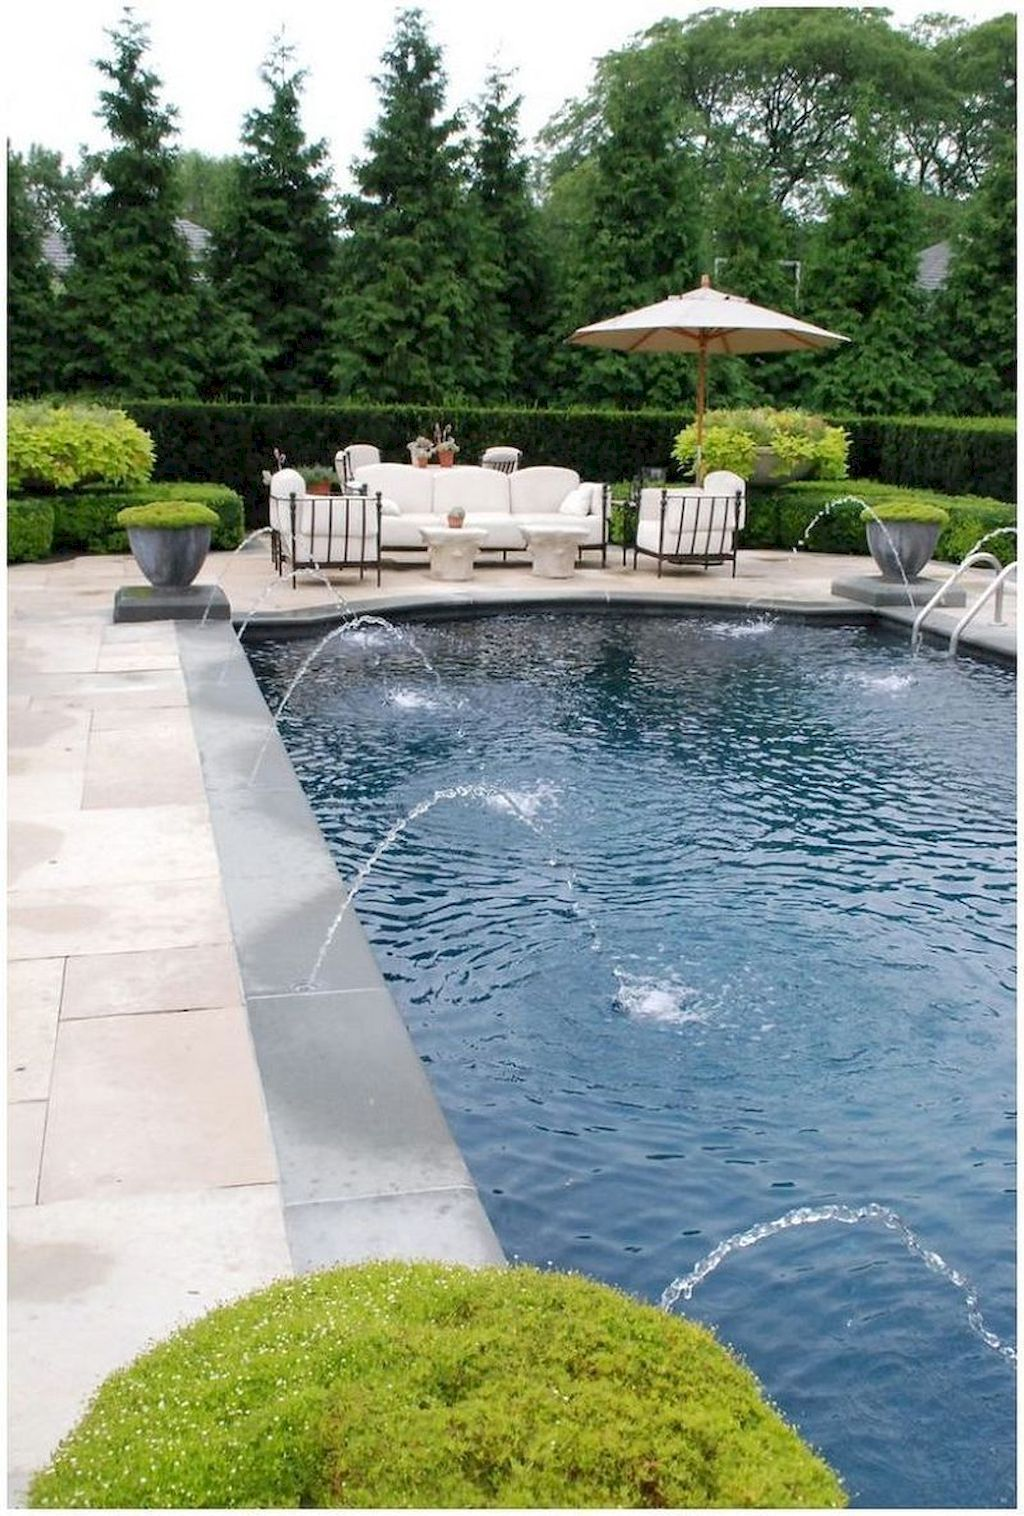 85 Small Backyard Swimming Pool Ideas And Design Caindale News Pool Houses Swimming Pool Designs Pool Patio